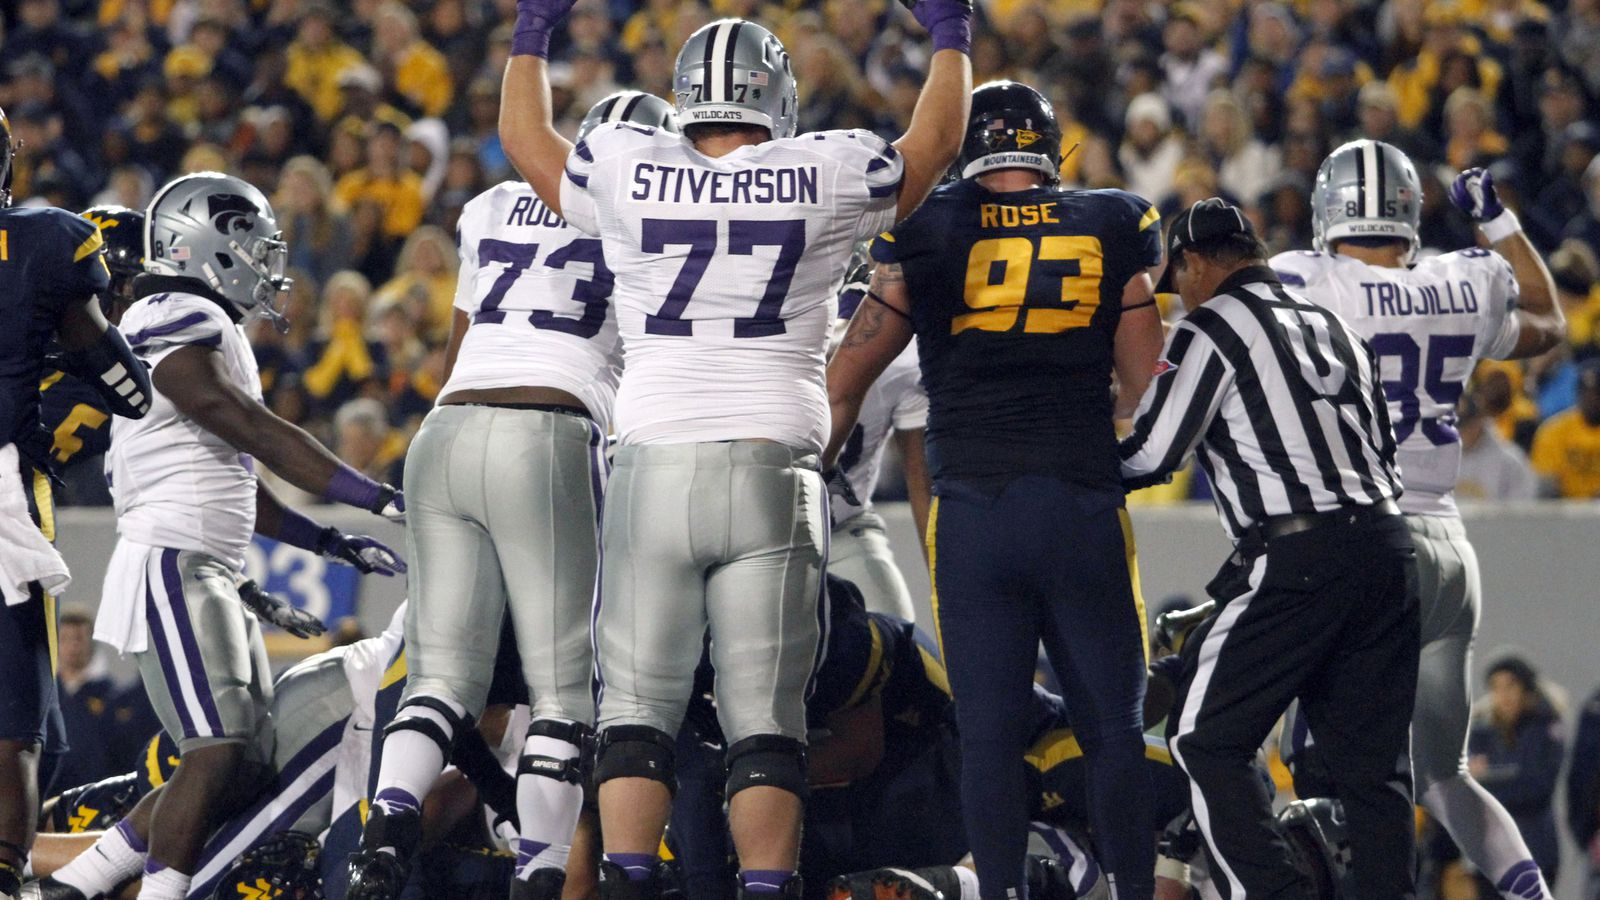 NFL Jerseys Outlet - 77 DAYS TO KICKOFF: Boston Stiverson - Bring On The Cats